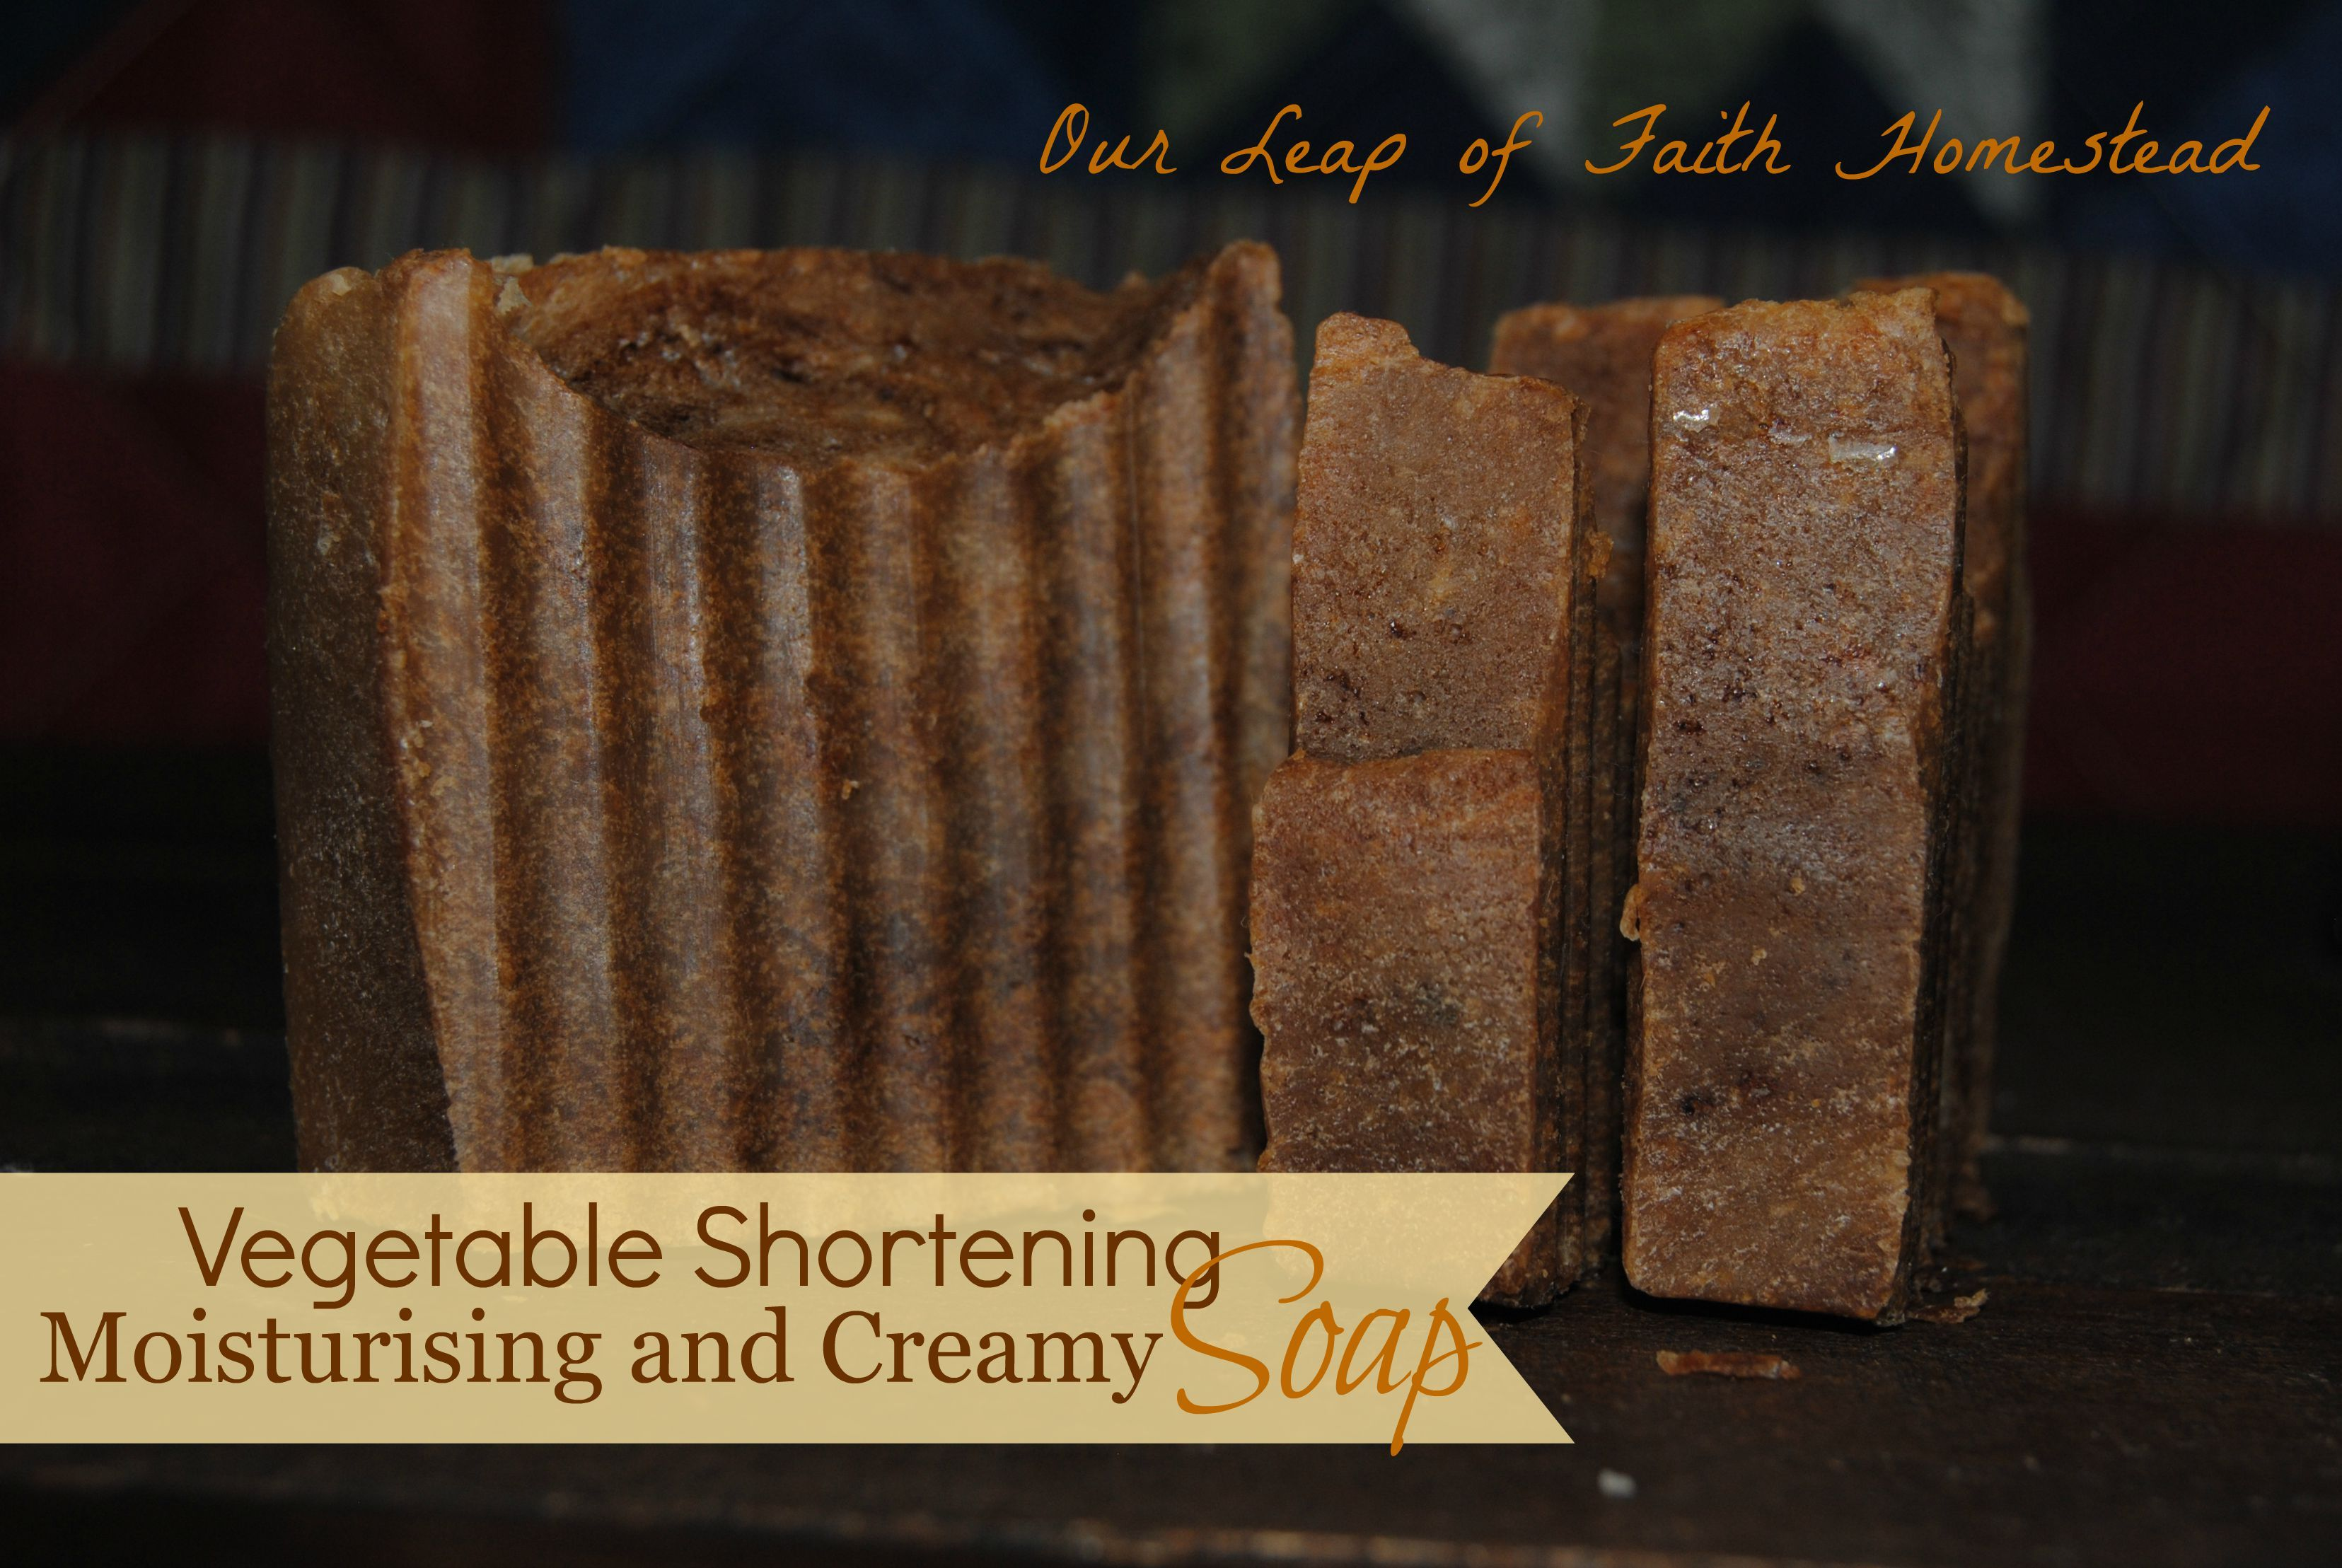 Simple recipe for soap with vegetable shortening as the main ingredient. Can be made with either cold process or hot process.  http://ourleapoffaithhomestead.blogspot.com/2015/09/soap-recipe-with-vegetable-shortening.html